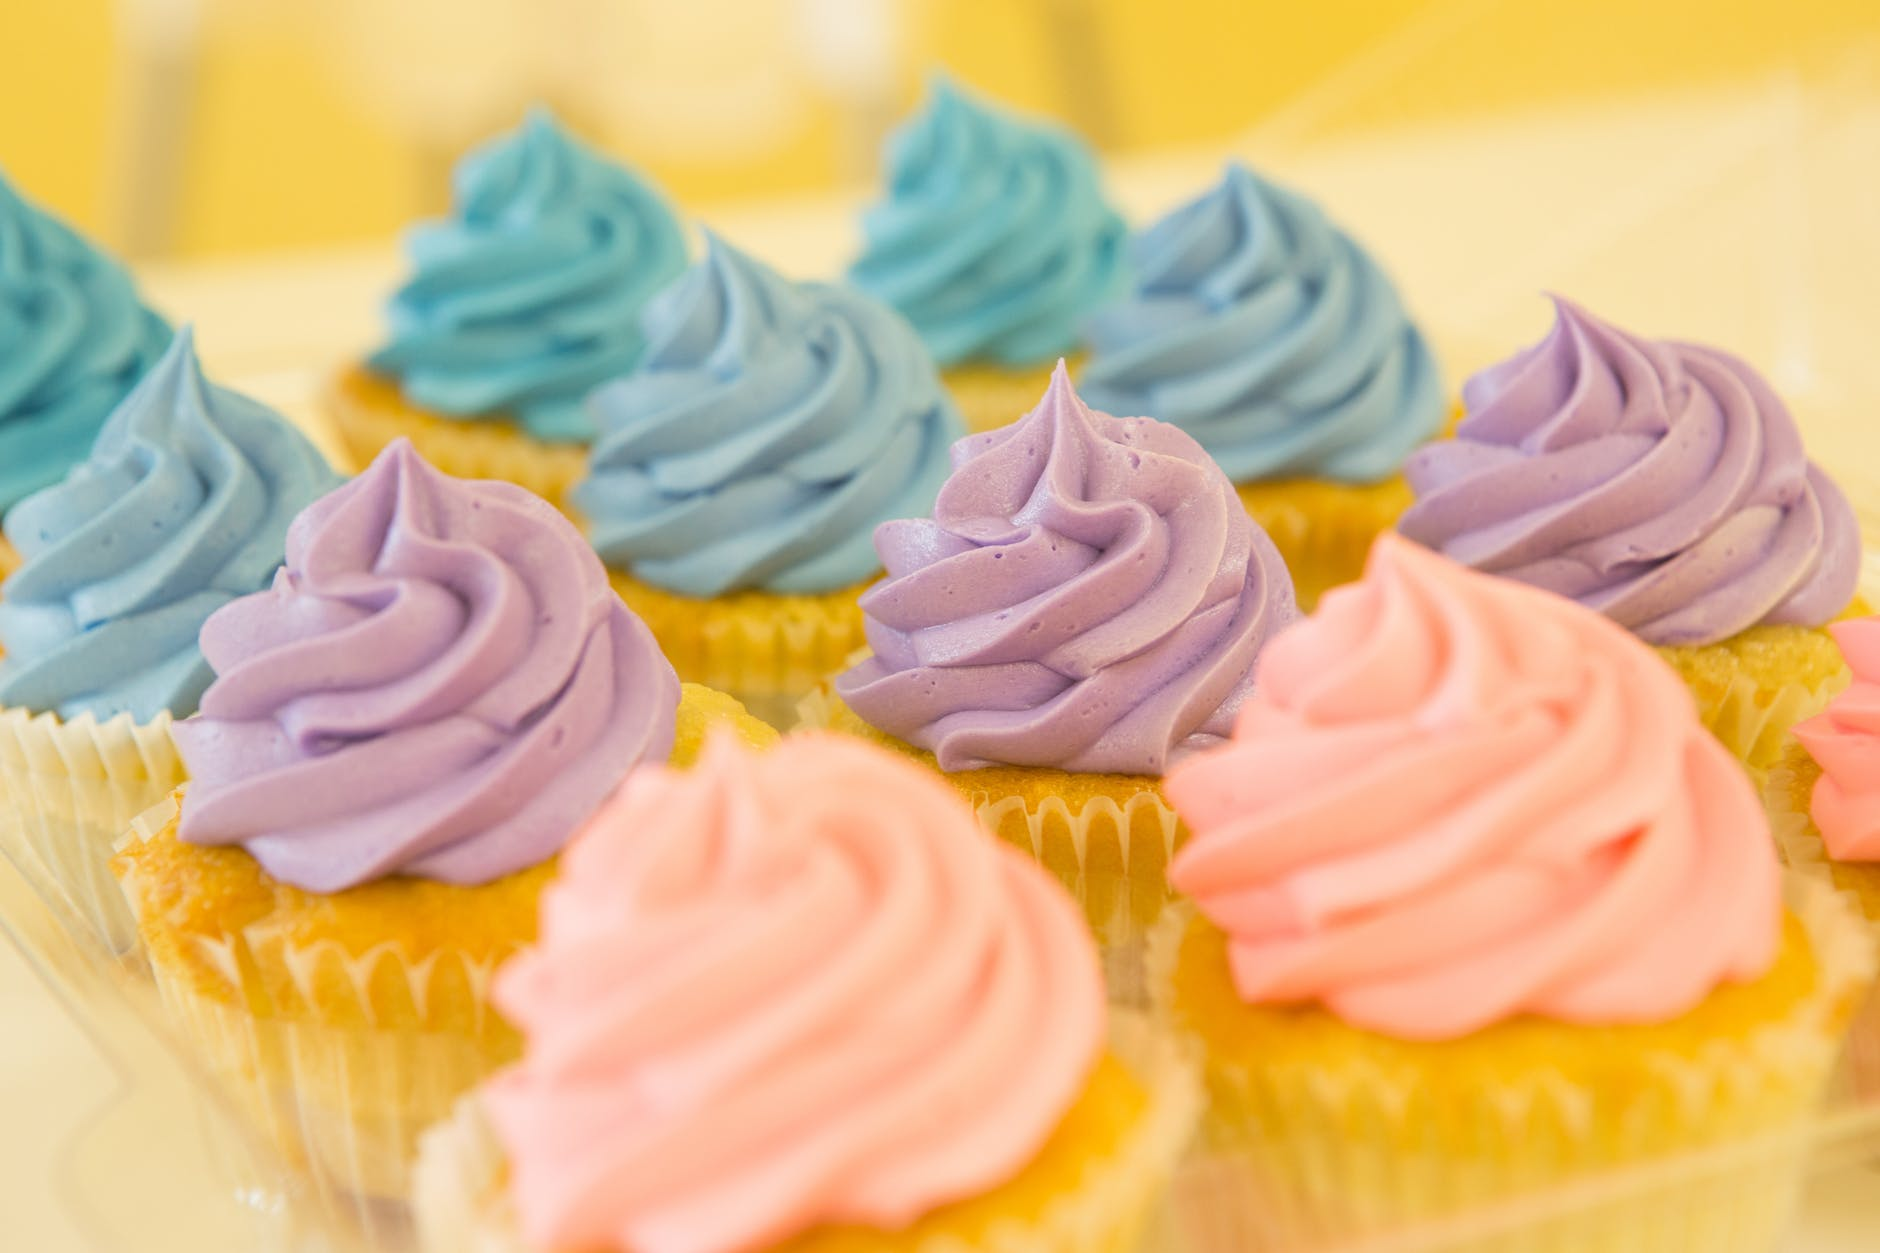 Appeasing Cupcakes For Your Sugar Craving